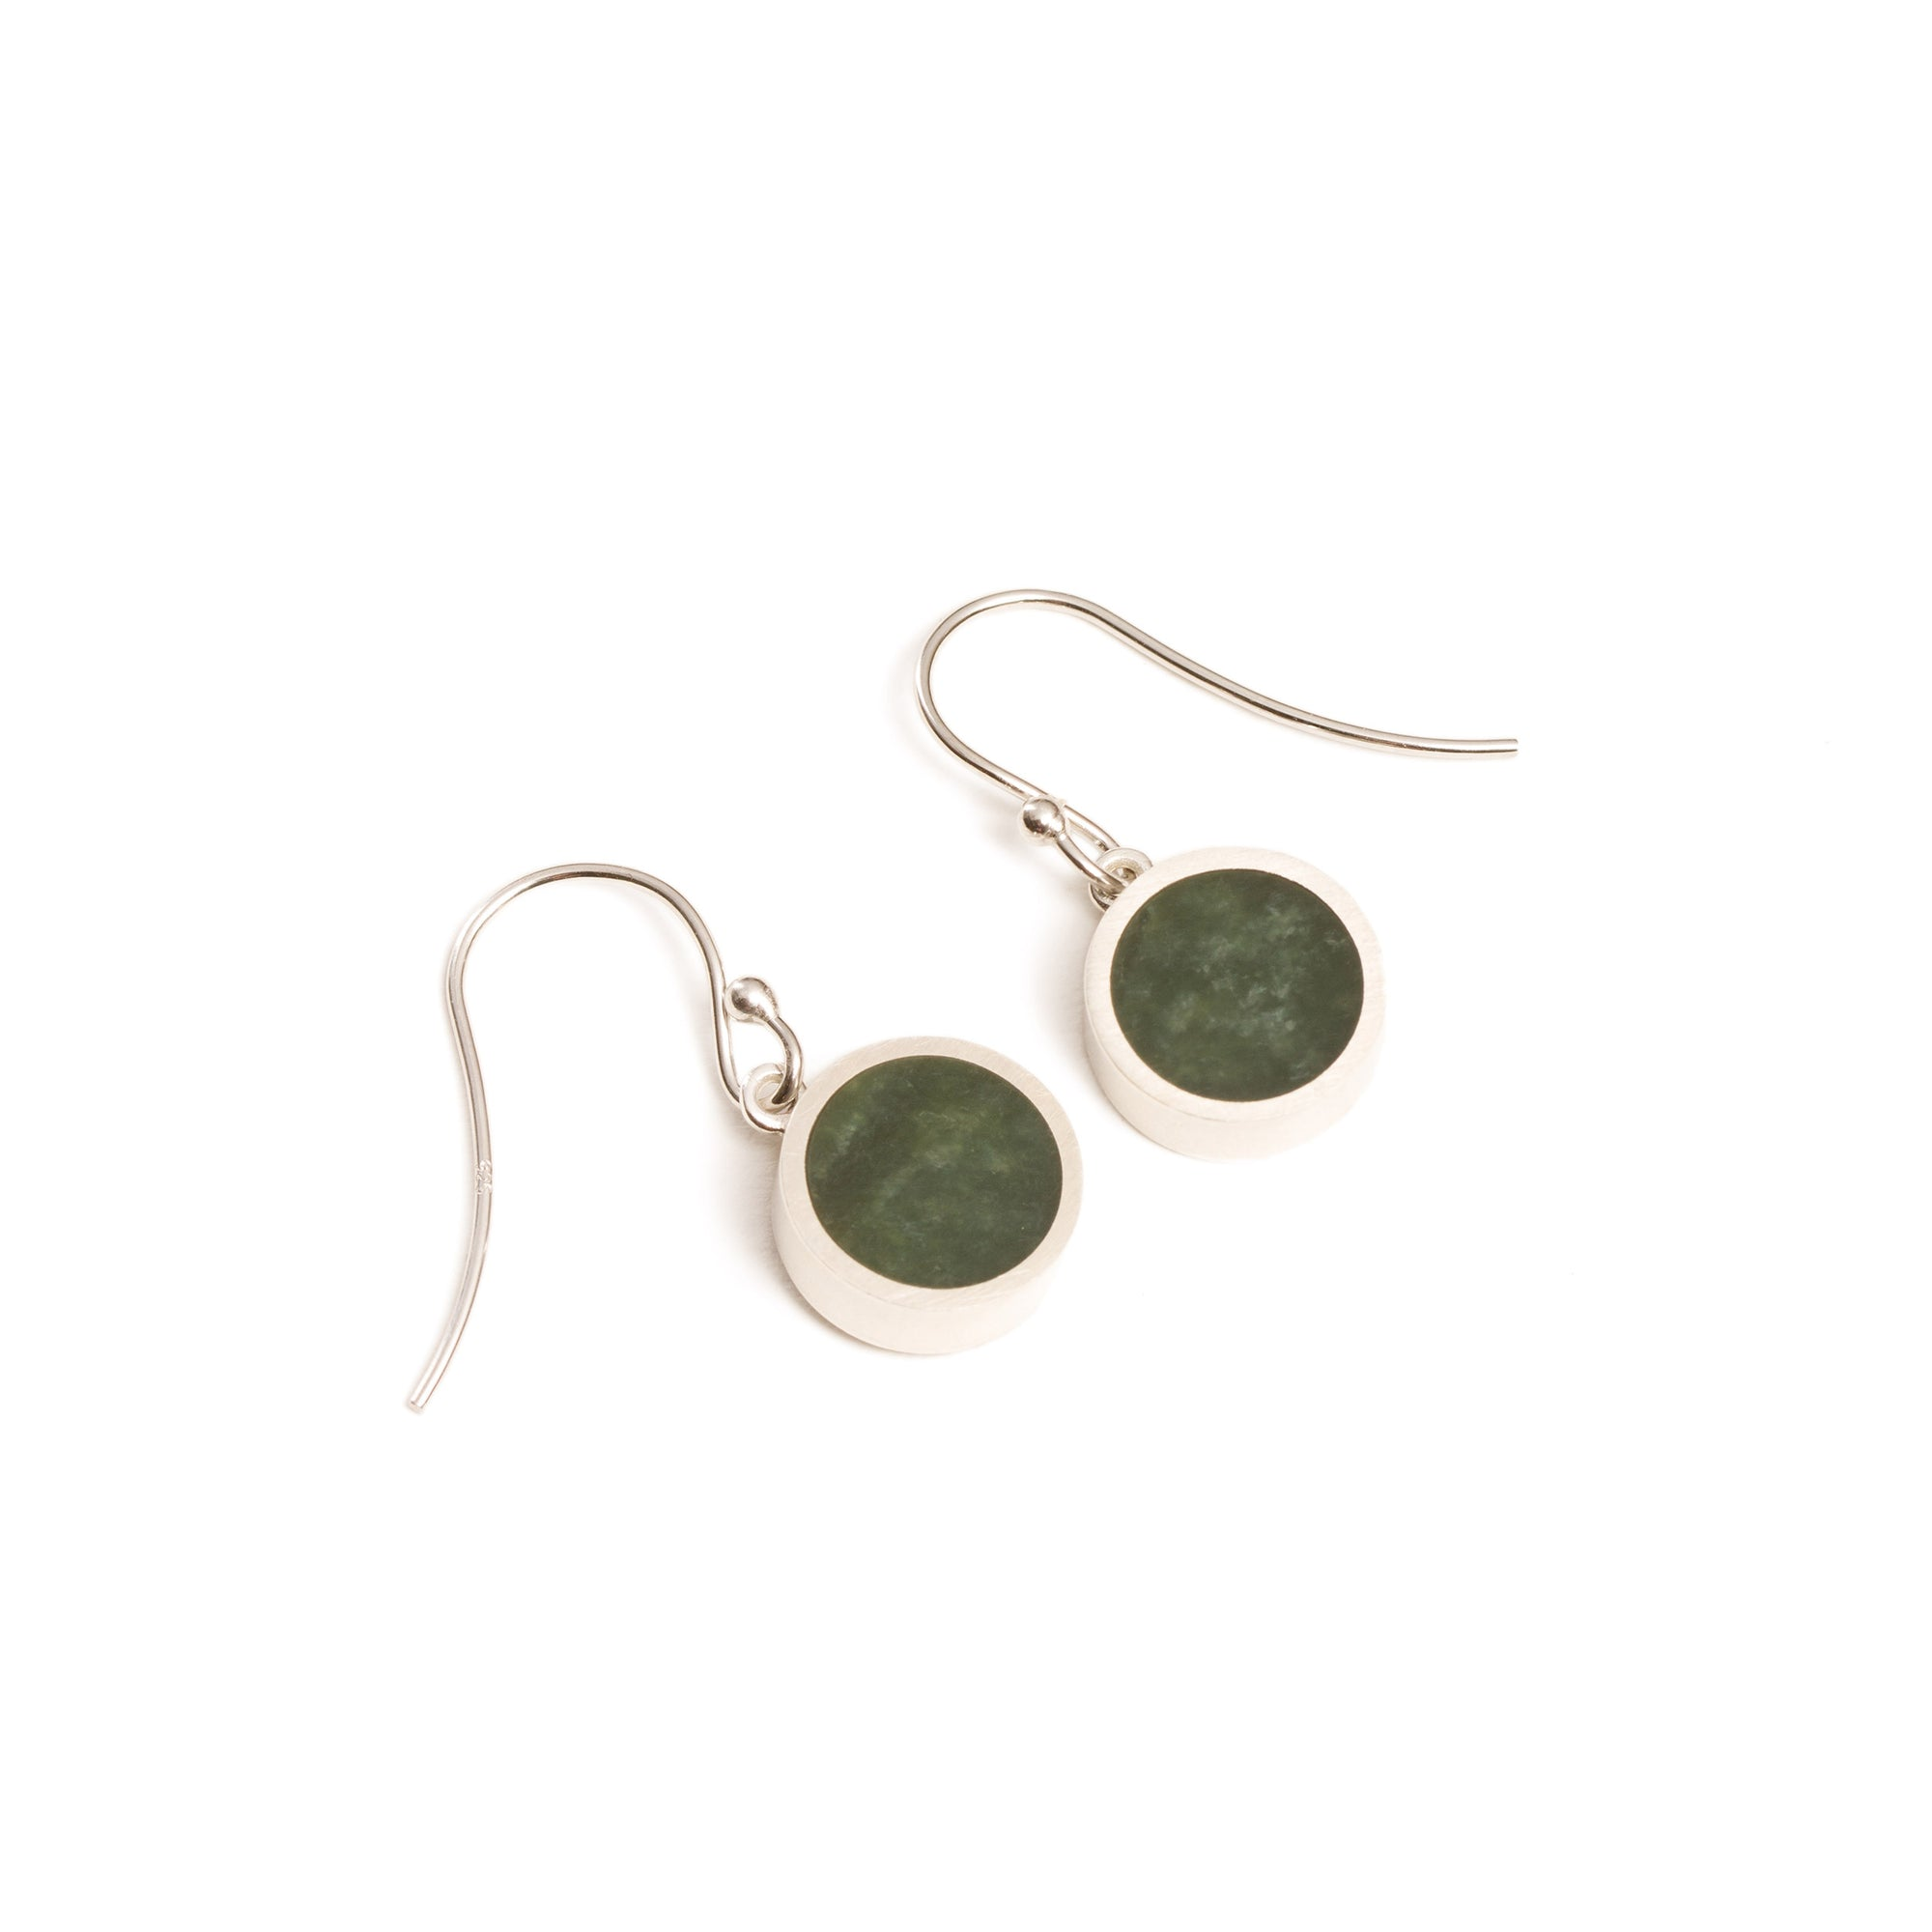 New Zealand Greenstone Small Round Drop Earrings